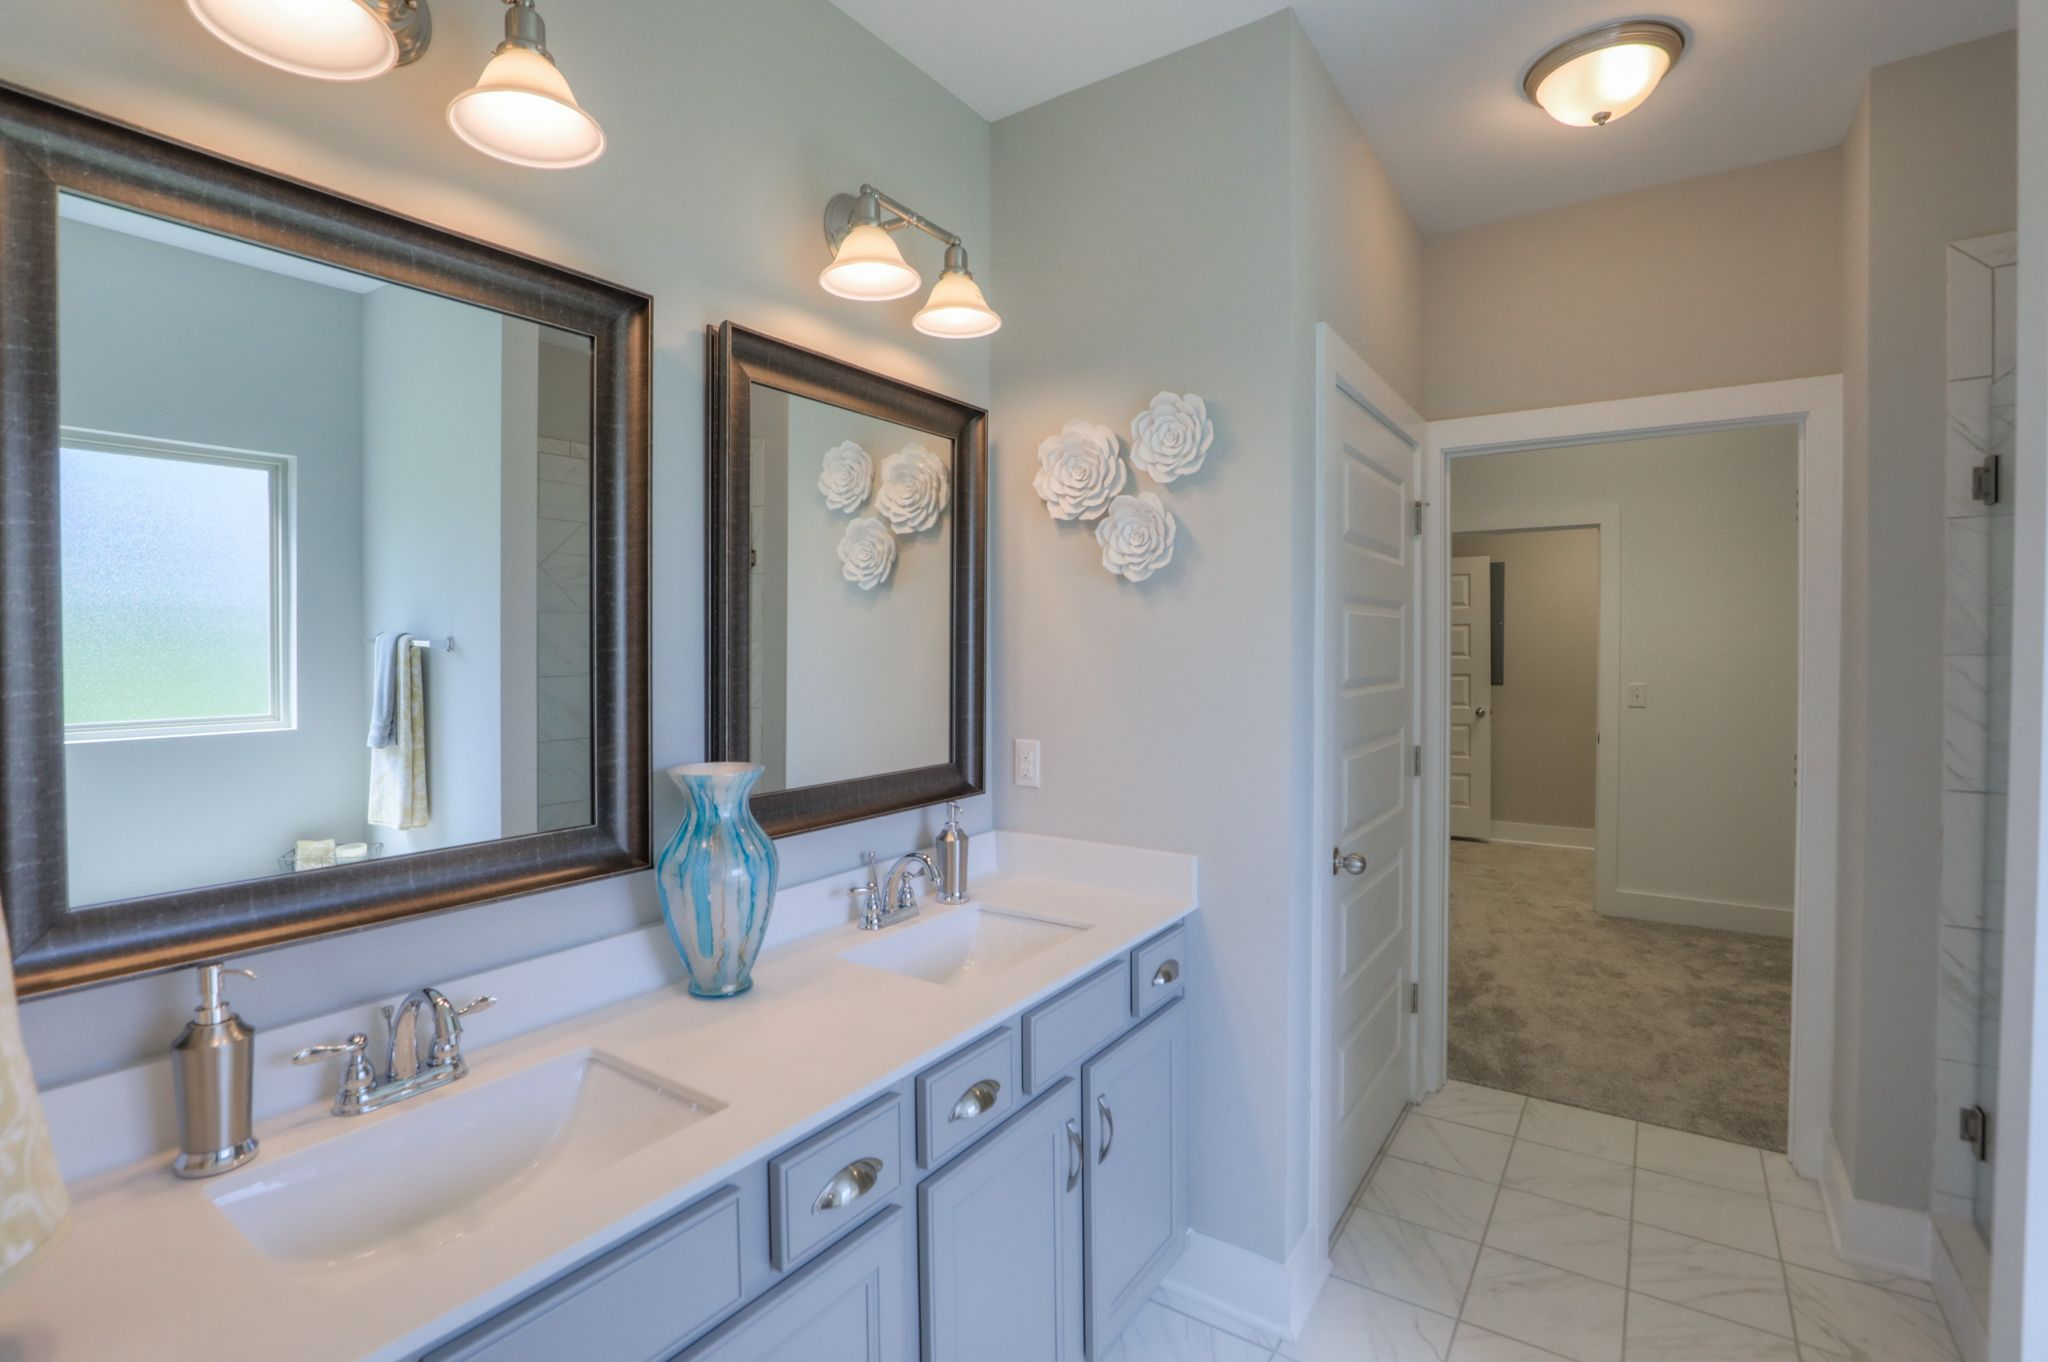 Bathroom featured in The Lexington By Goodall Homes in Owensboro, KY